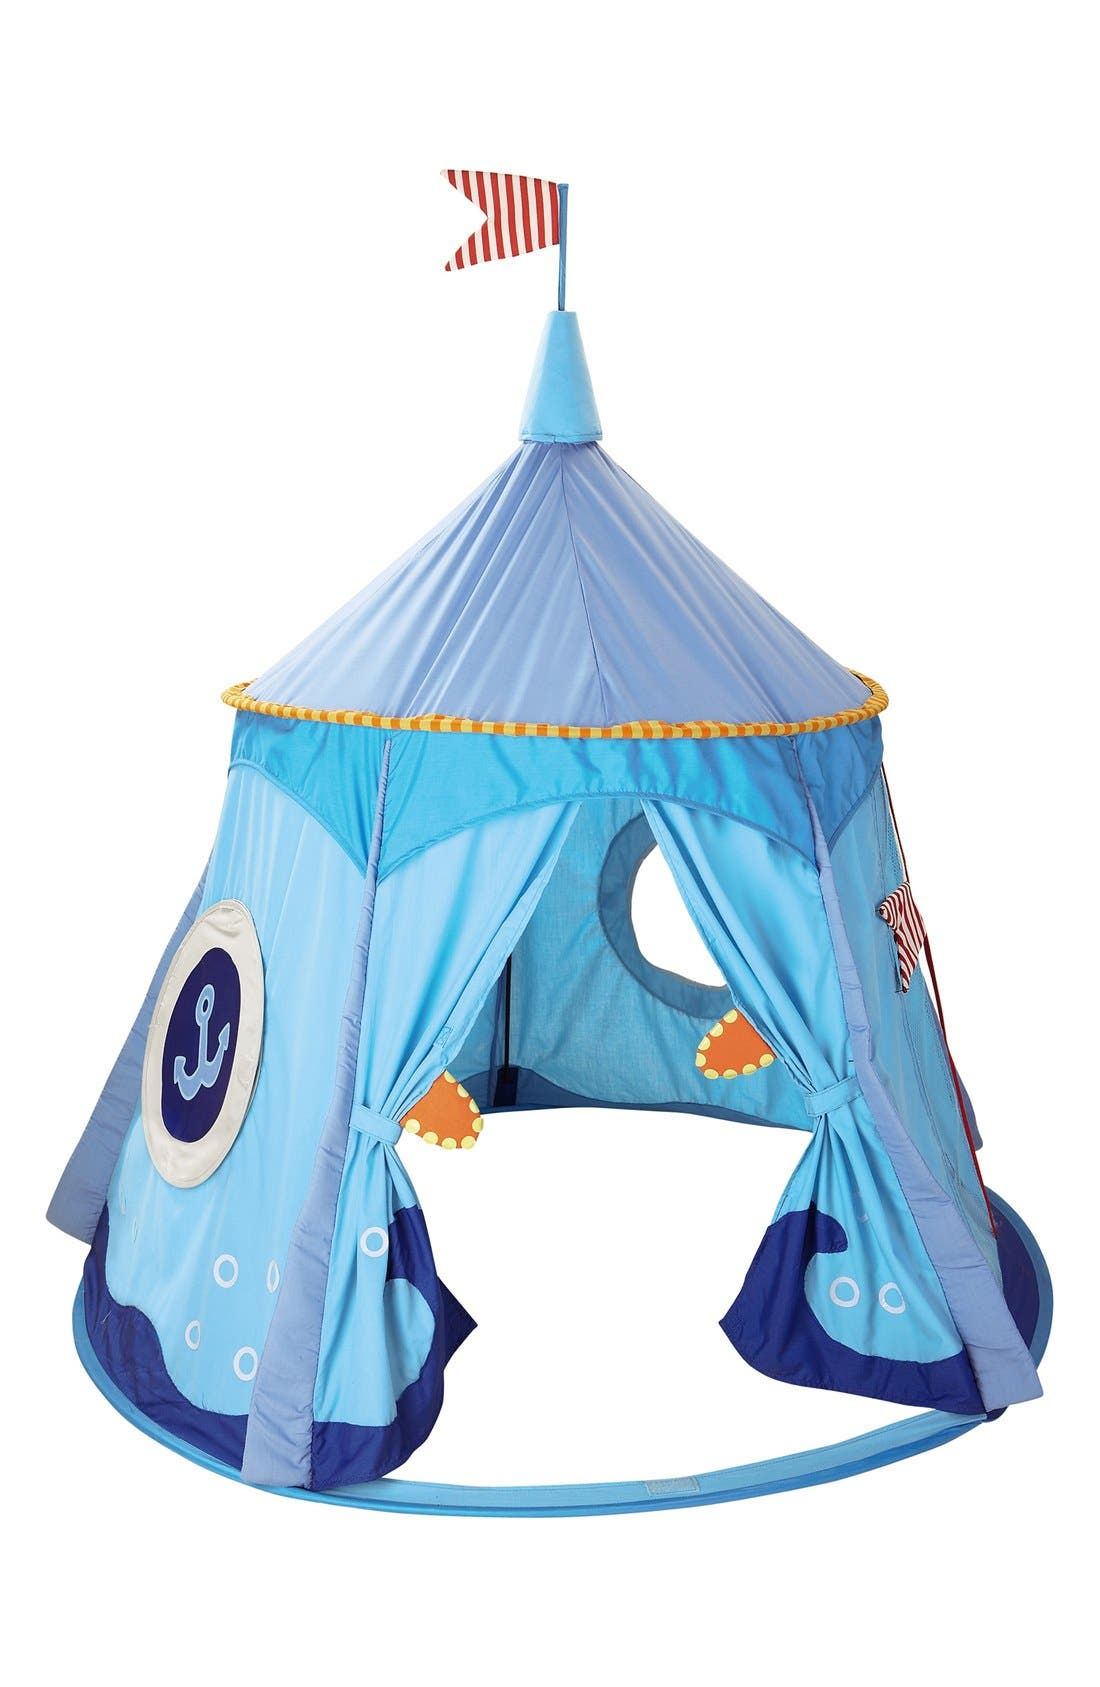 HABA 'Pirate's Treasure' Play Tent